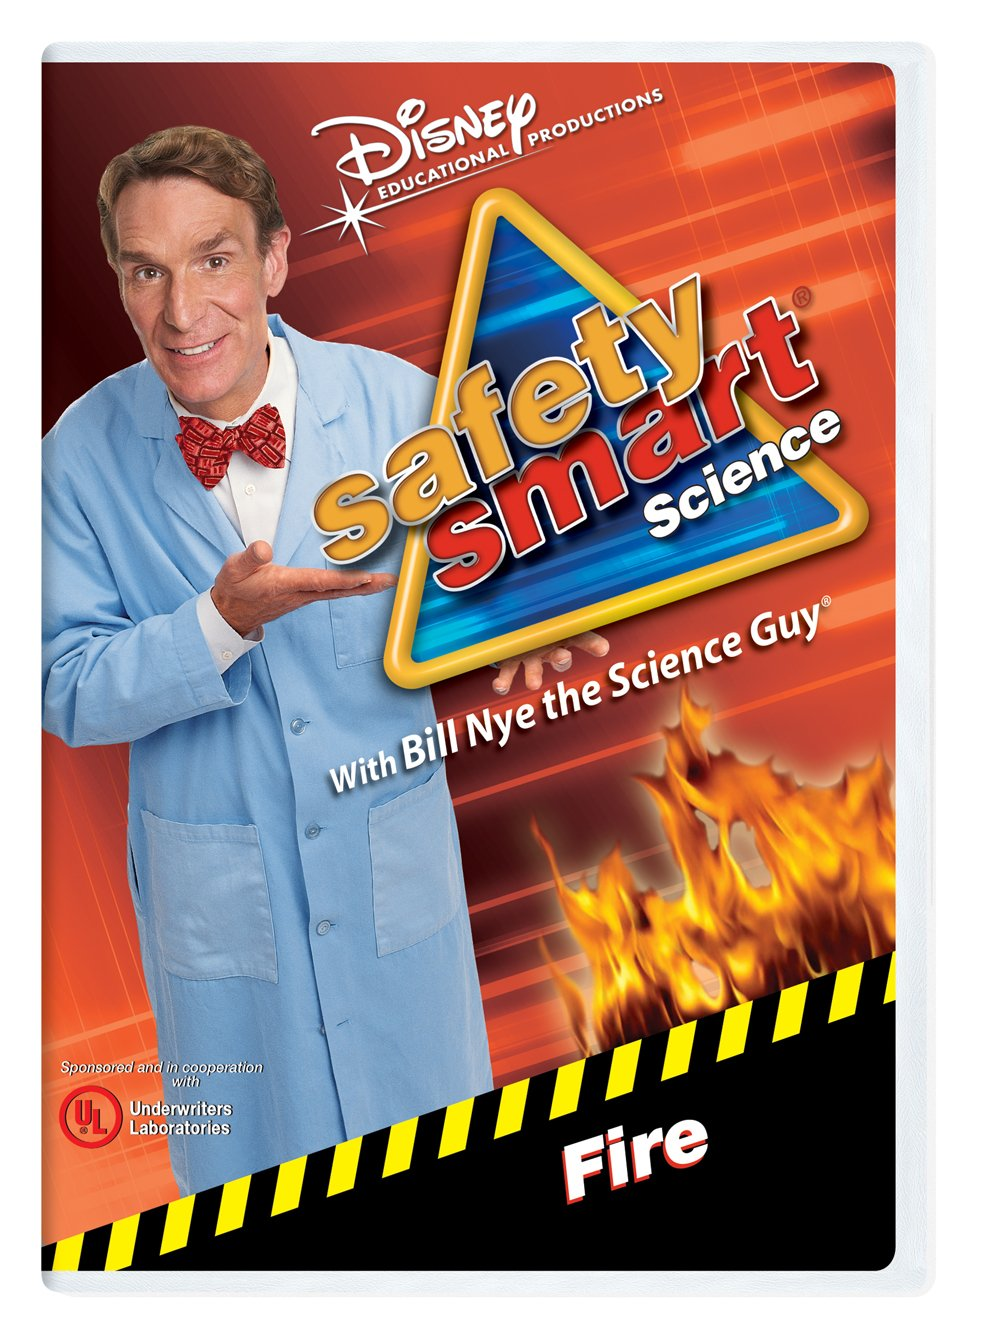 Safety Smart Science with Bill Nye the Science Guy: Fire Classroom Edition [Interactive DVD]